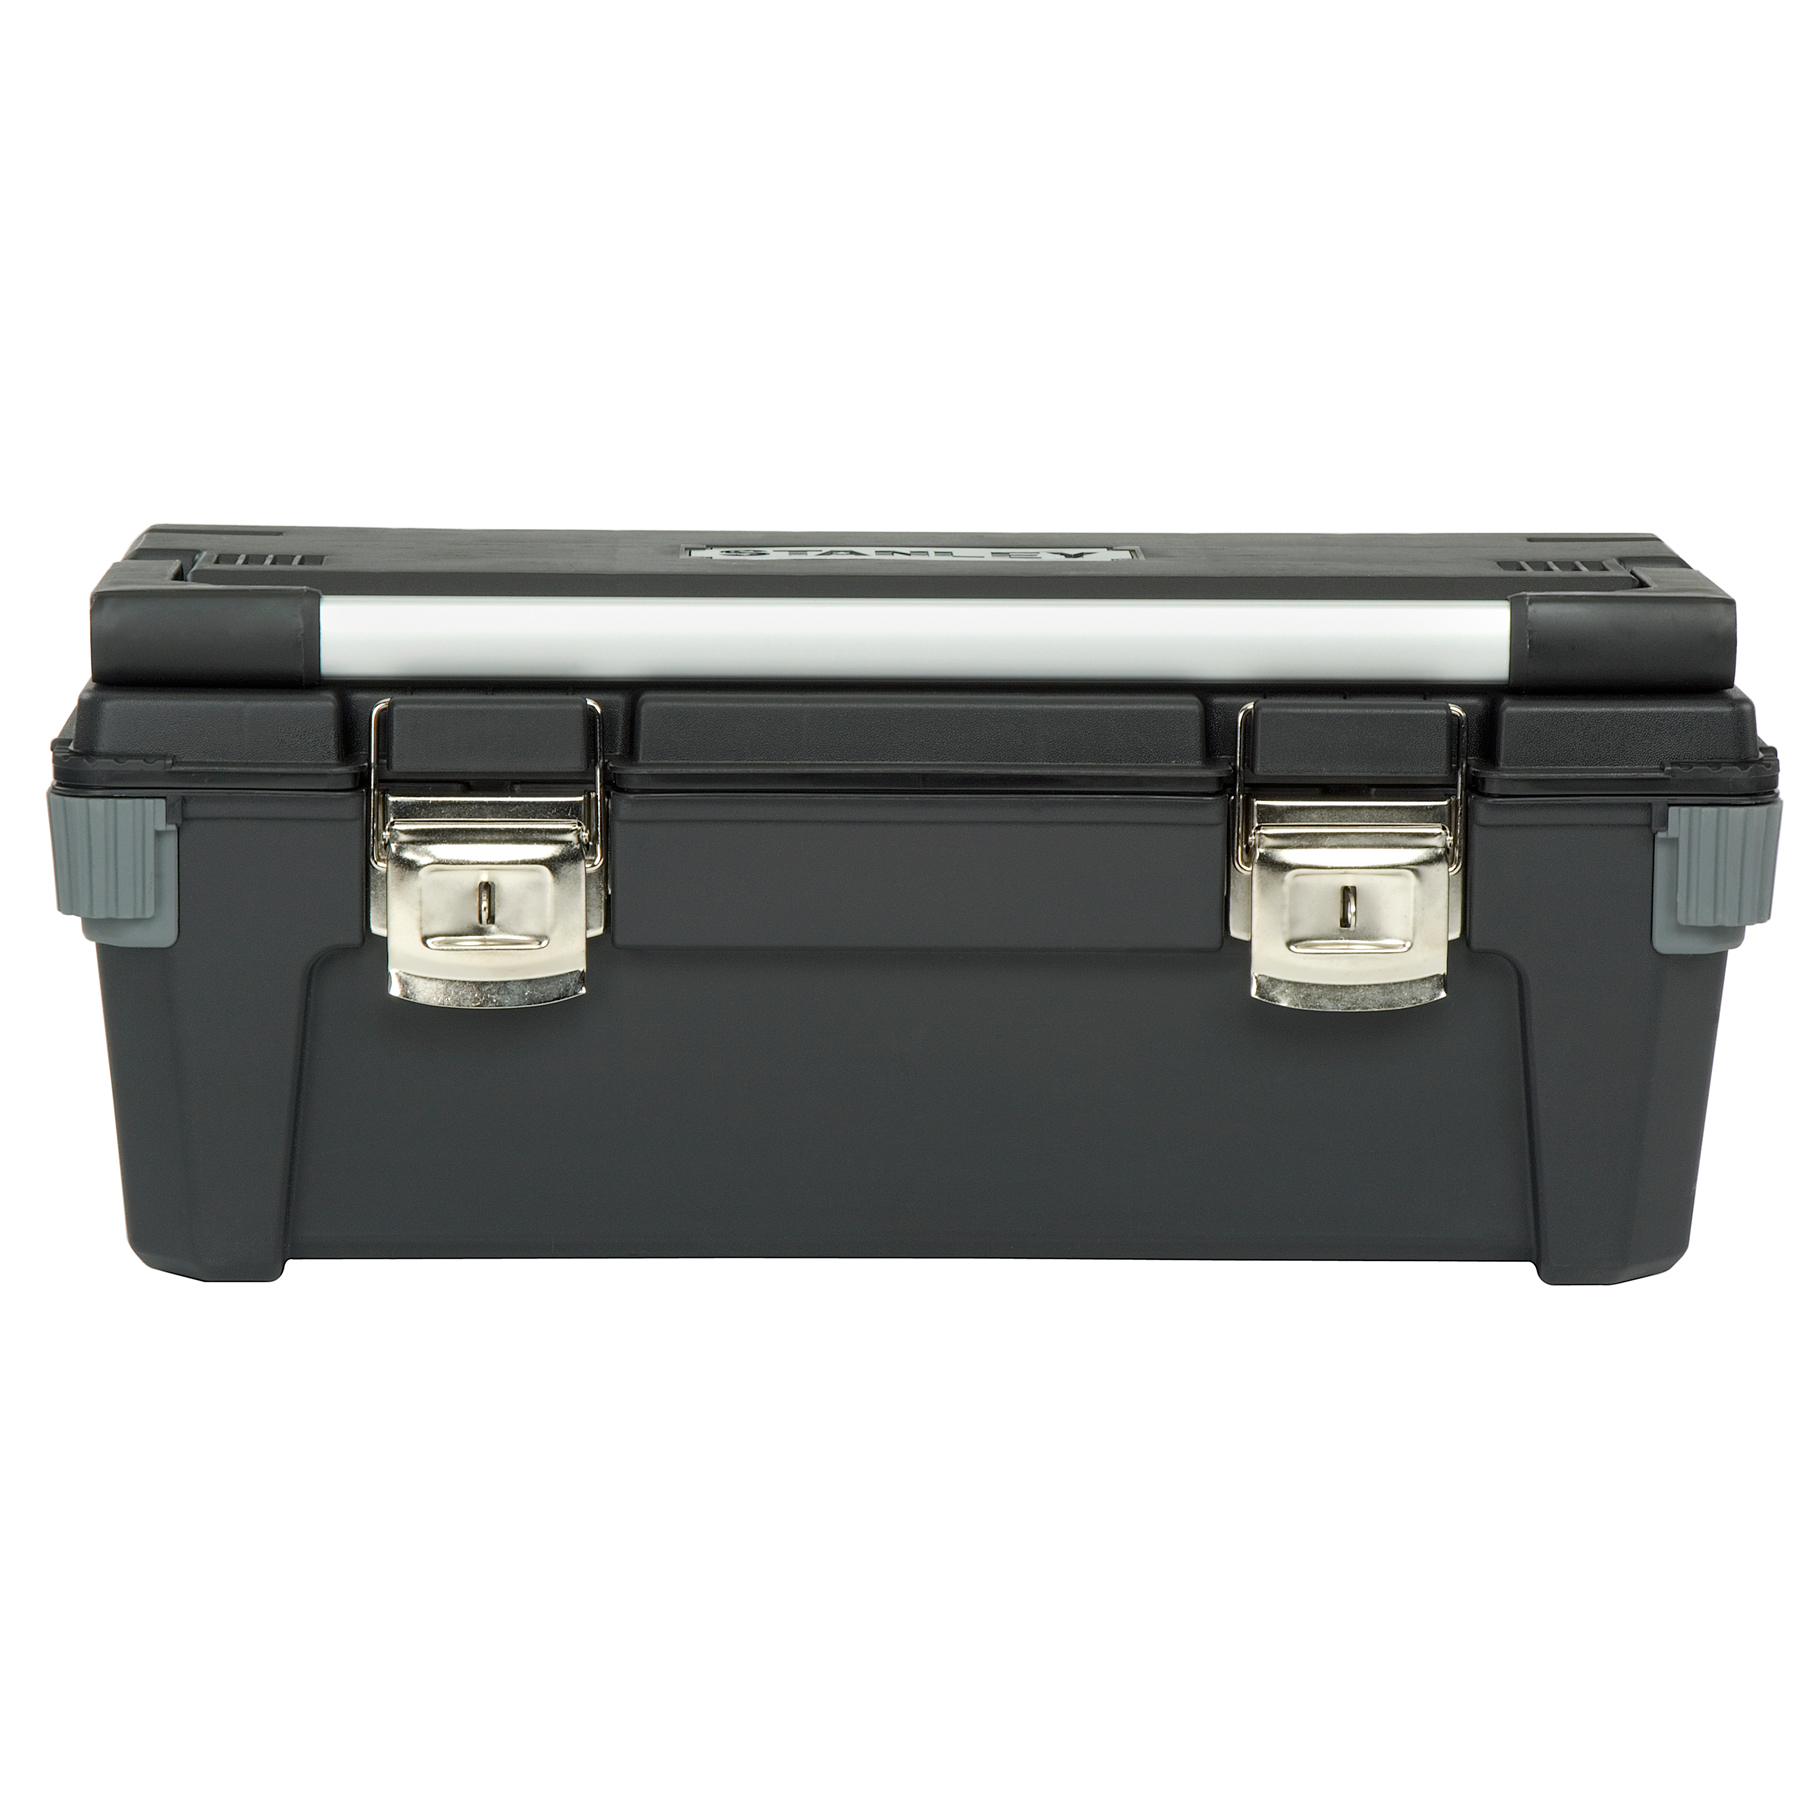 STANLEY 020300R 20-Inch Professional Tool Box